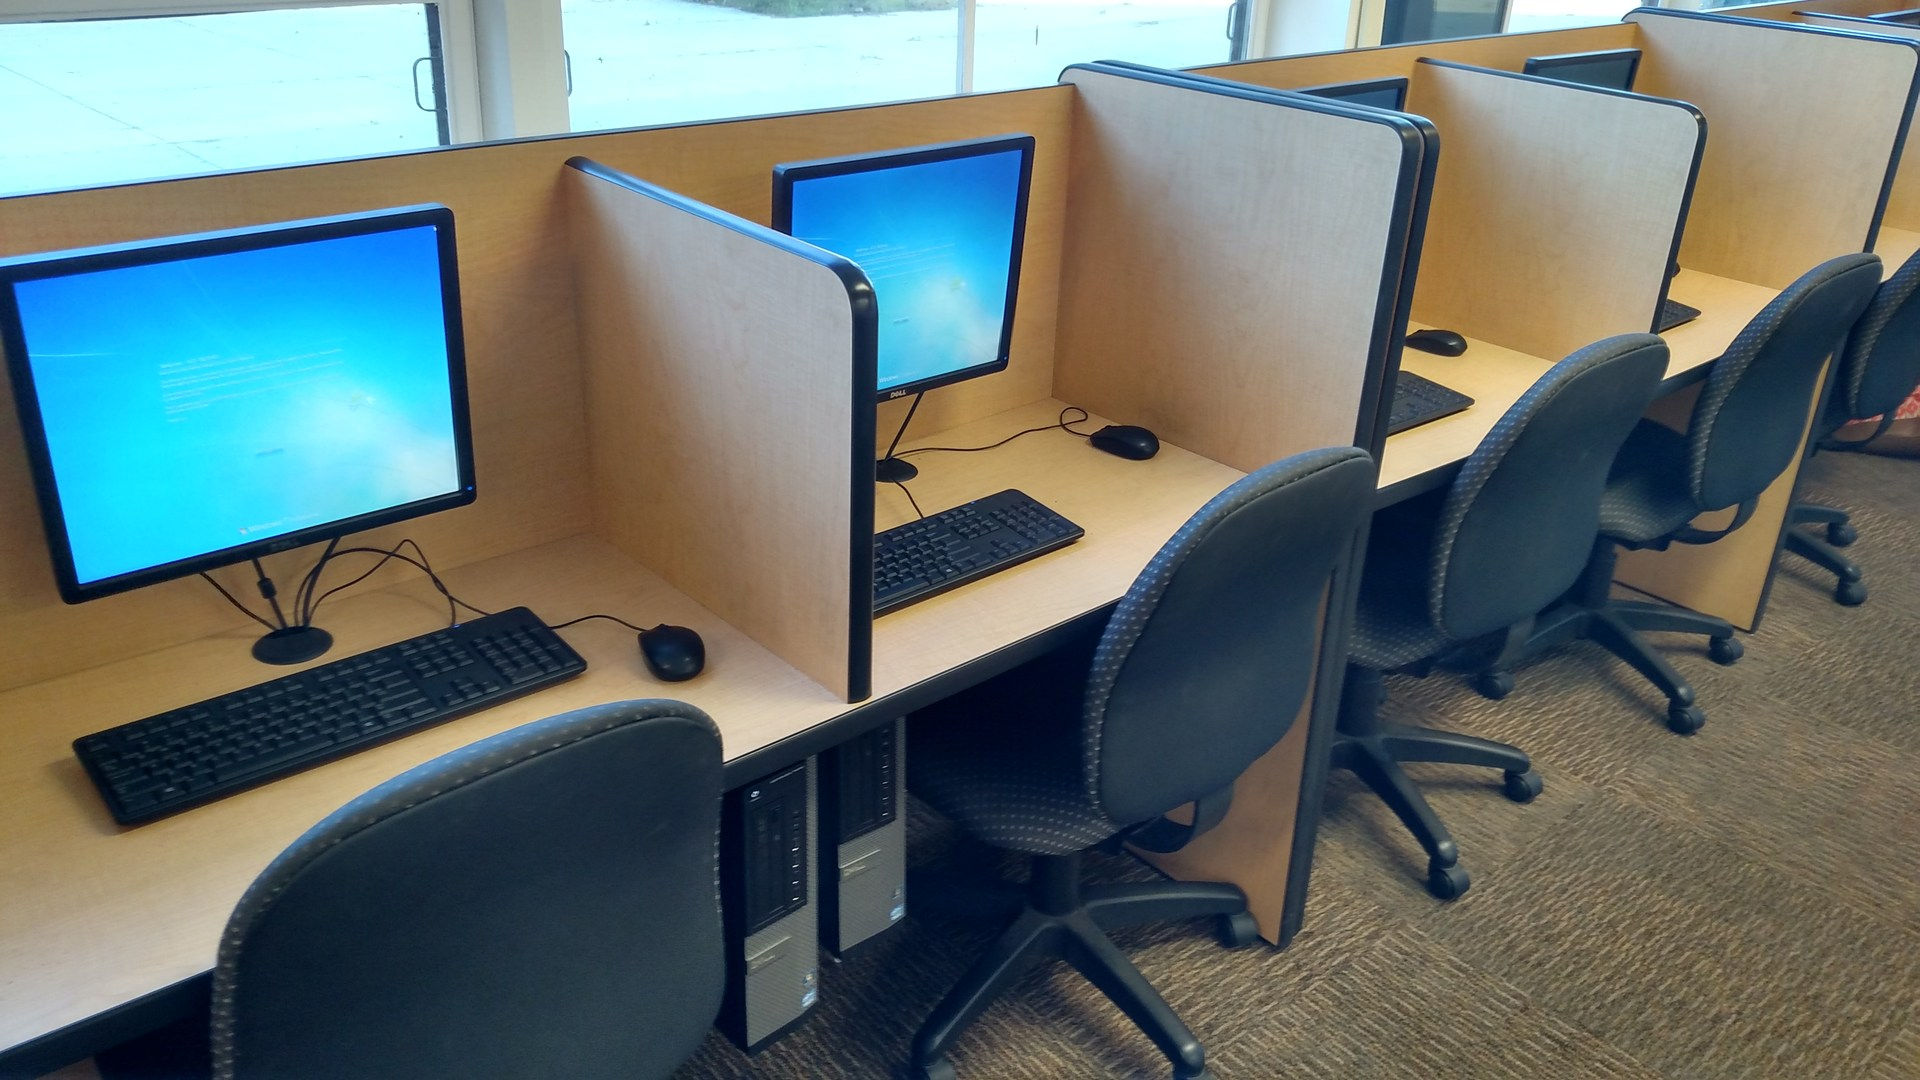 Image of school computers and desks